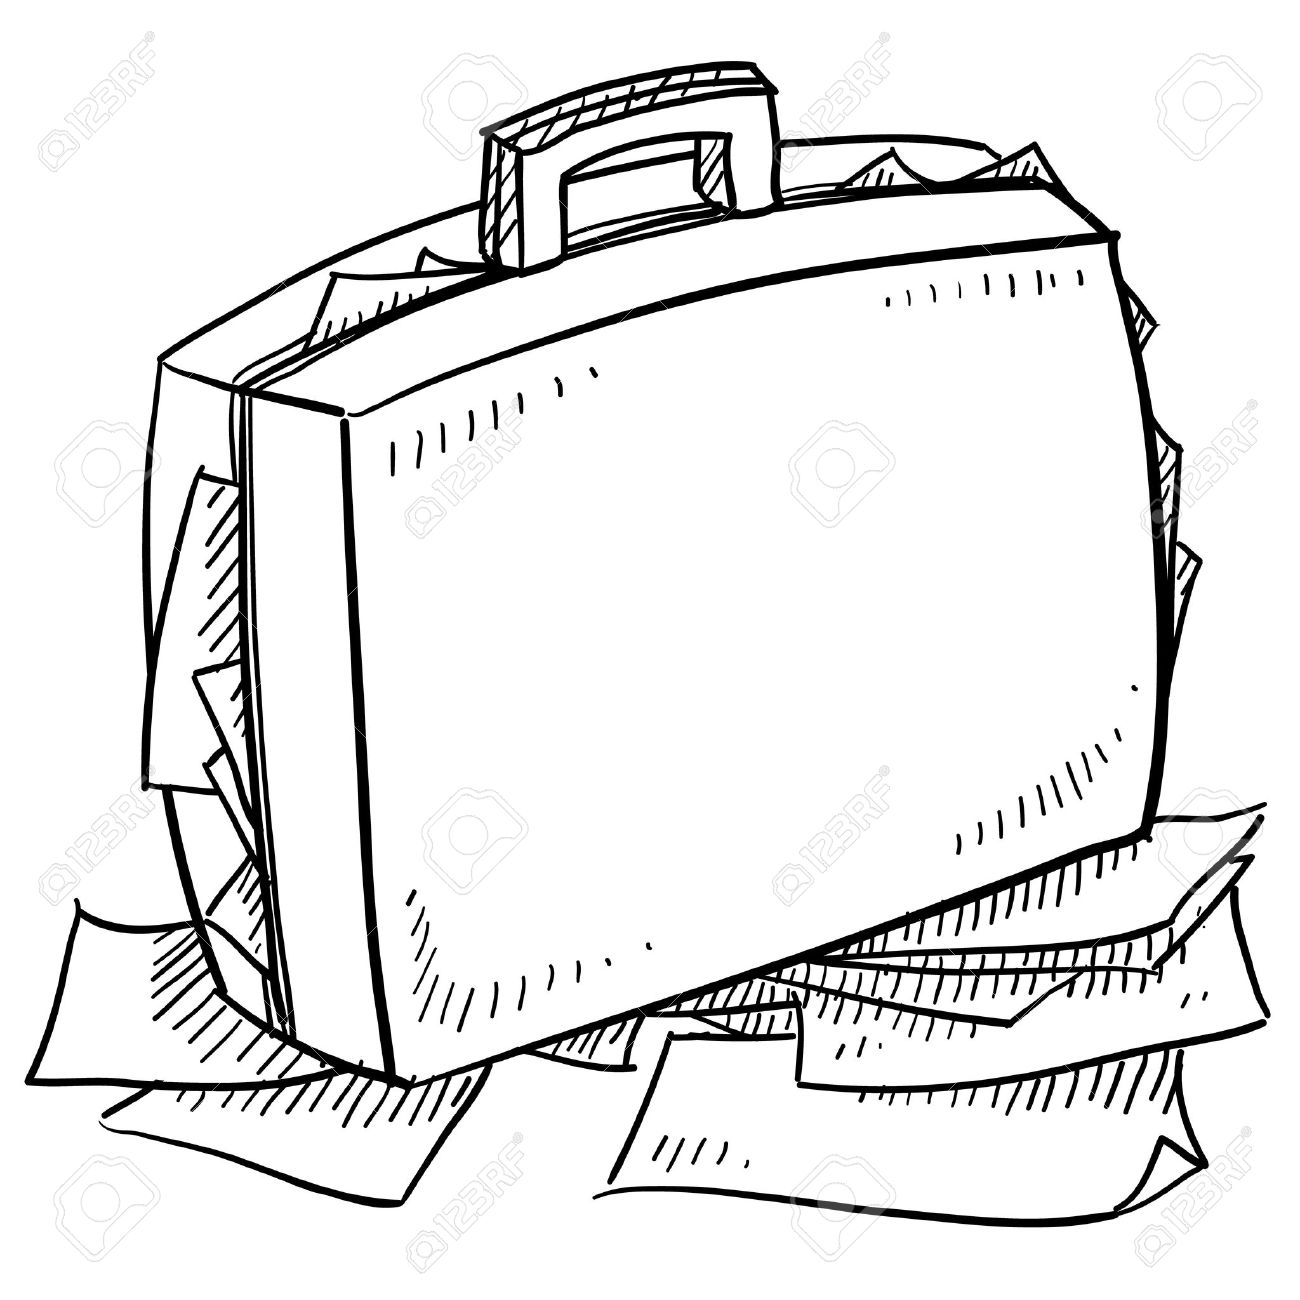 Doodle style office briefcase stuffed with papers sketch in vector format Stock Vector - 14559350